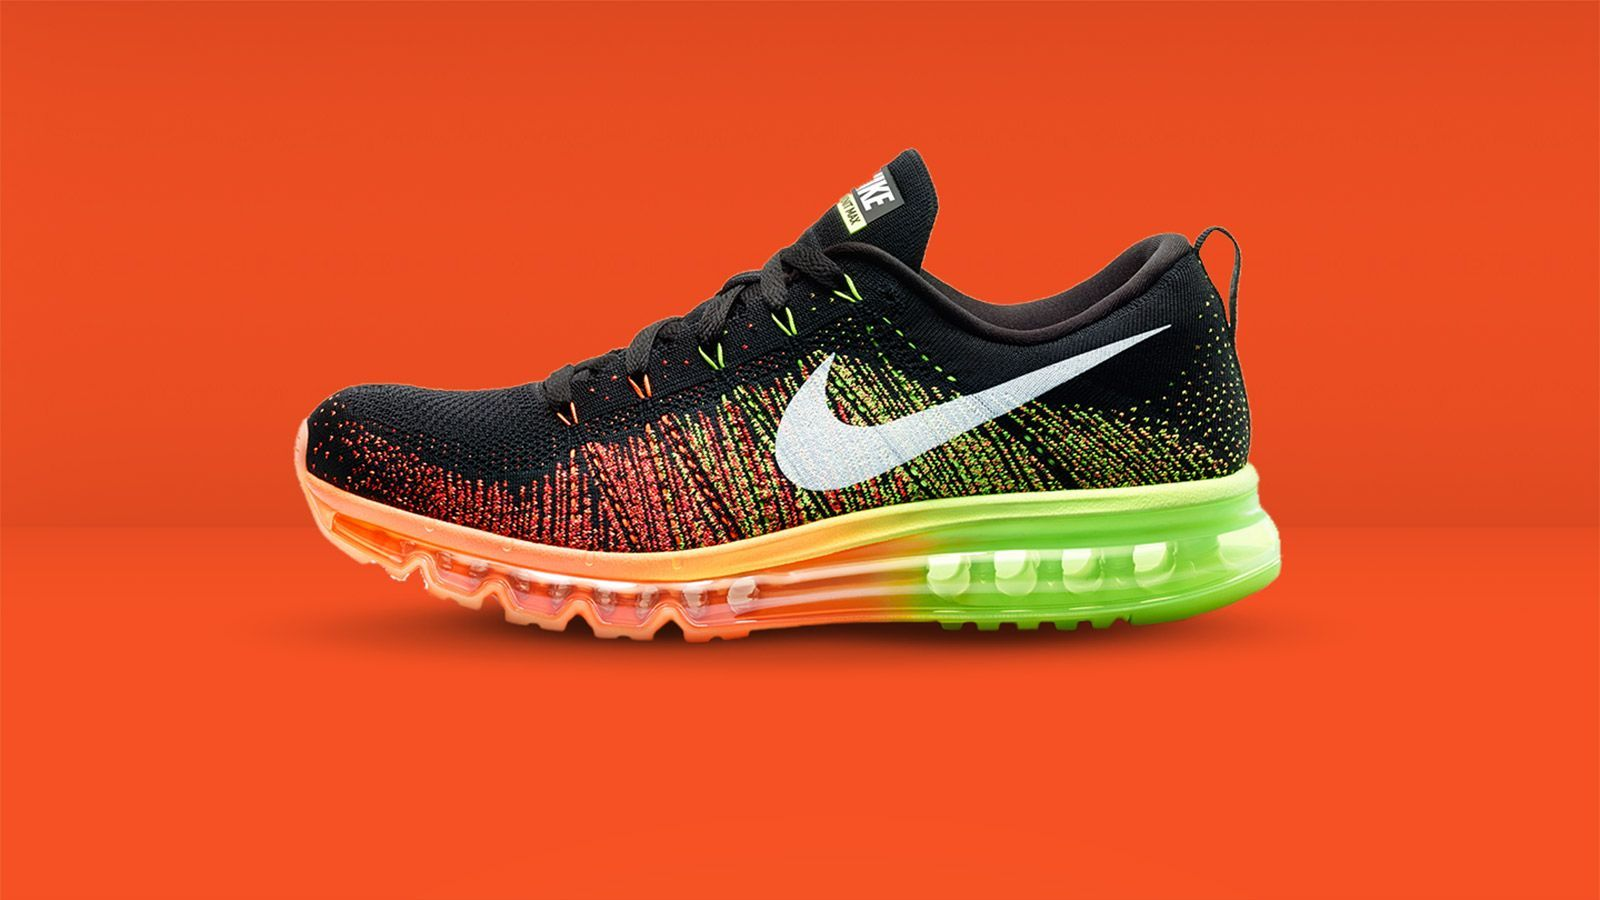 sale retailer d1305 f8bc9 nike shoes air max 2014 price in india